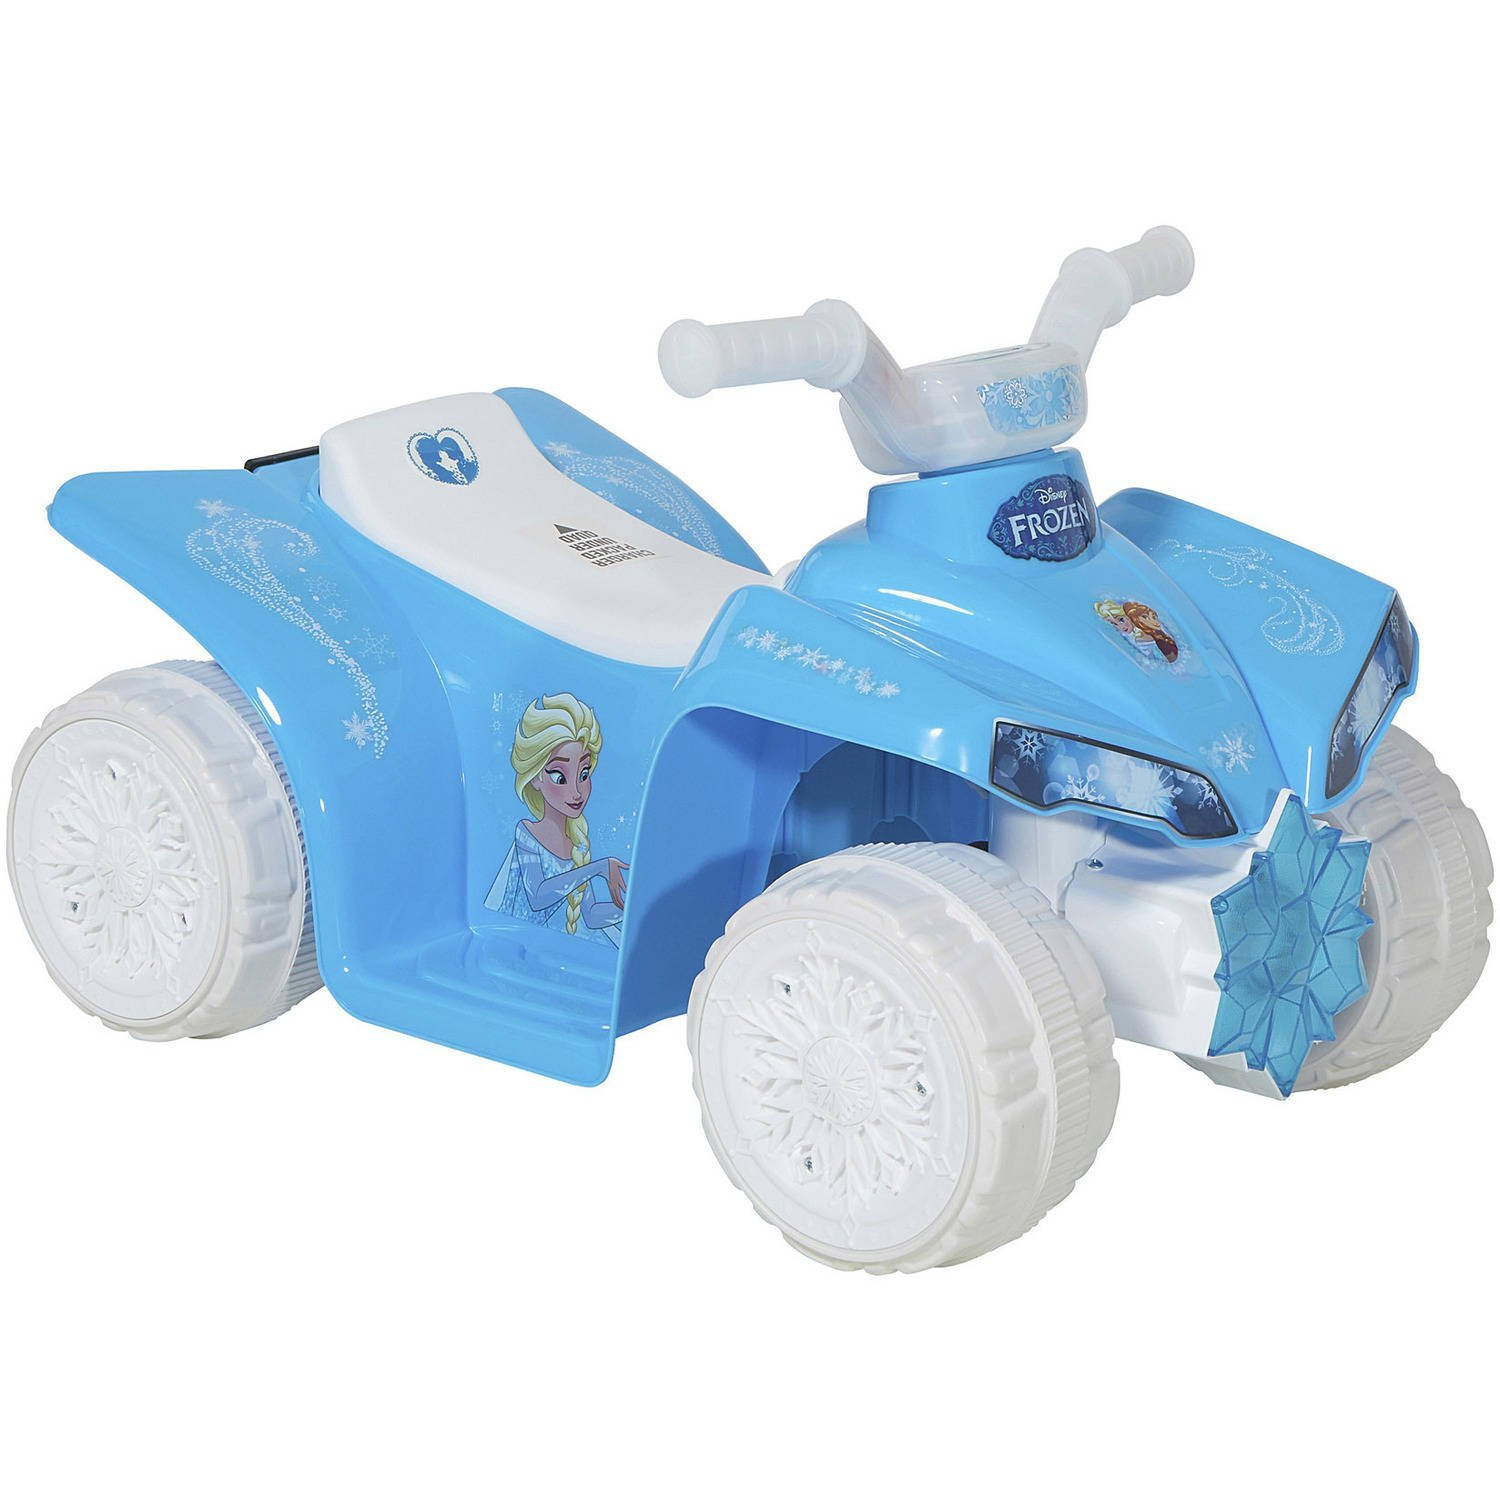 842e437d8f5a0 Get Quotations · Dynacraft Disney Frozen 6-Volt Battery Operated Little Ride  On Quad Toy Car for Kids